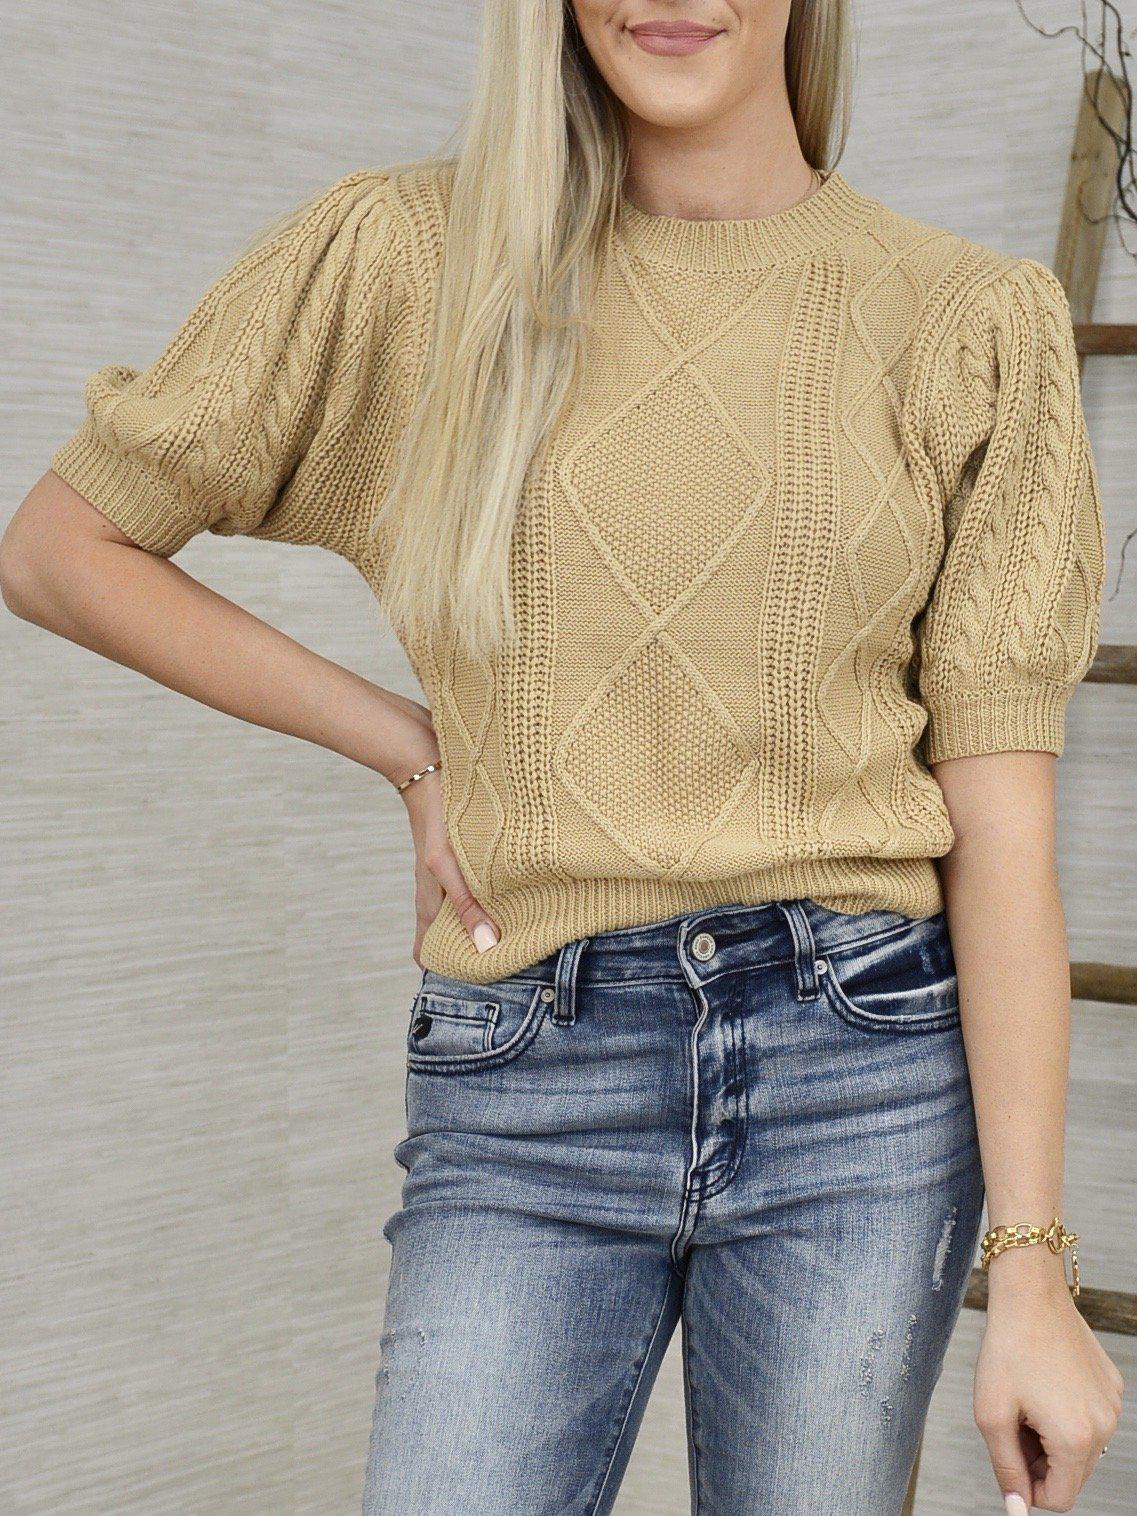 Cable Car Sweater-Women's -New Arrivals-Runway Seven